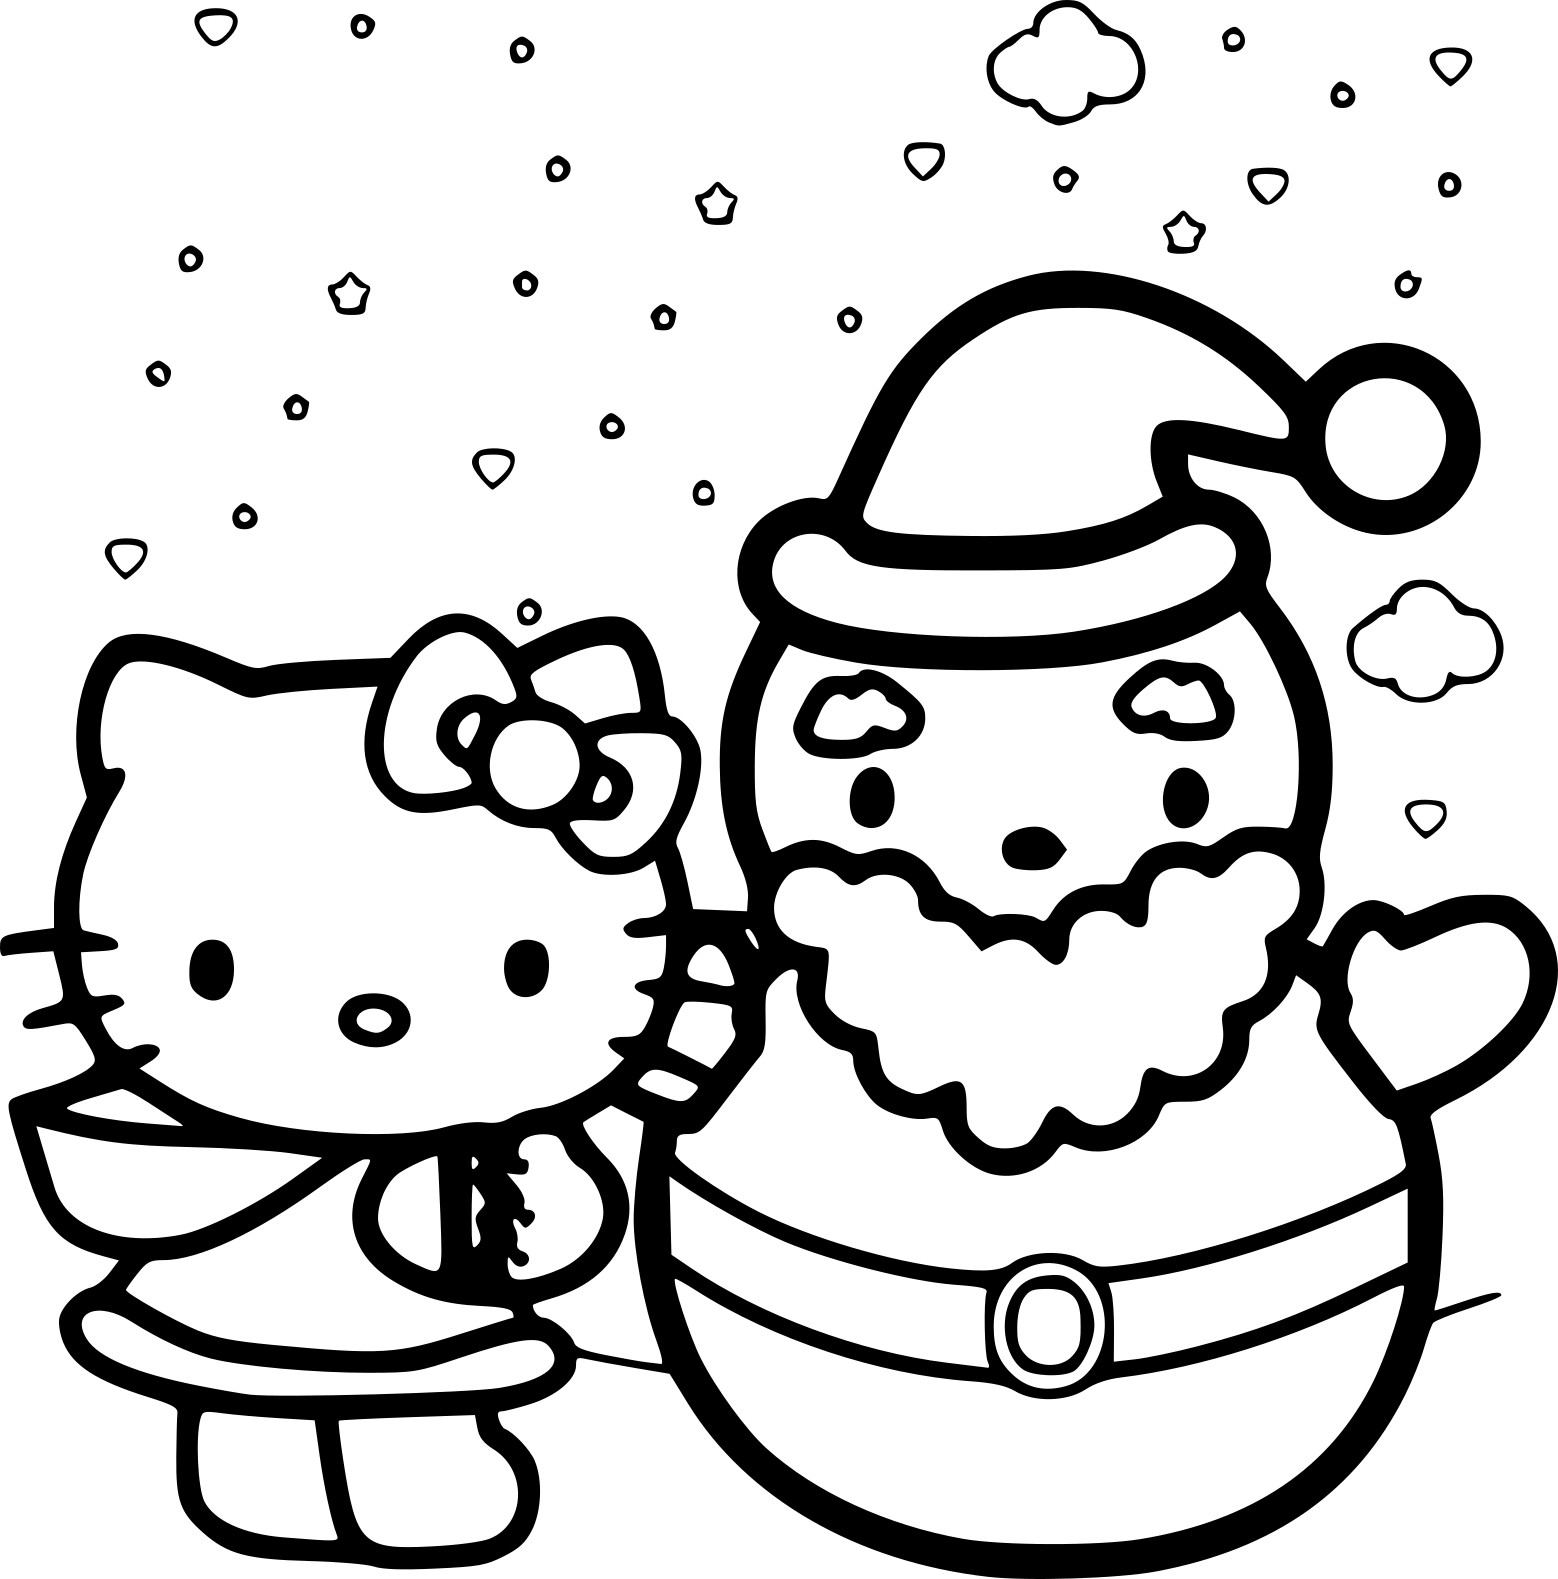 Impressionnant dessin a colorier hello kitty noel - Coloriage de hello kitty sur hugo l escargot ...